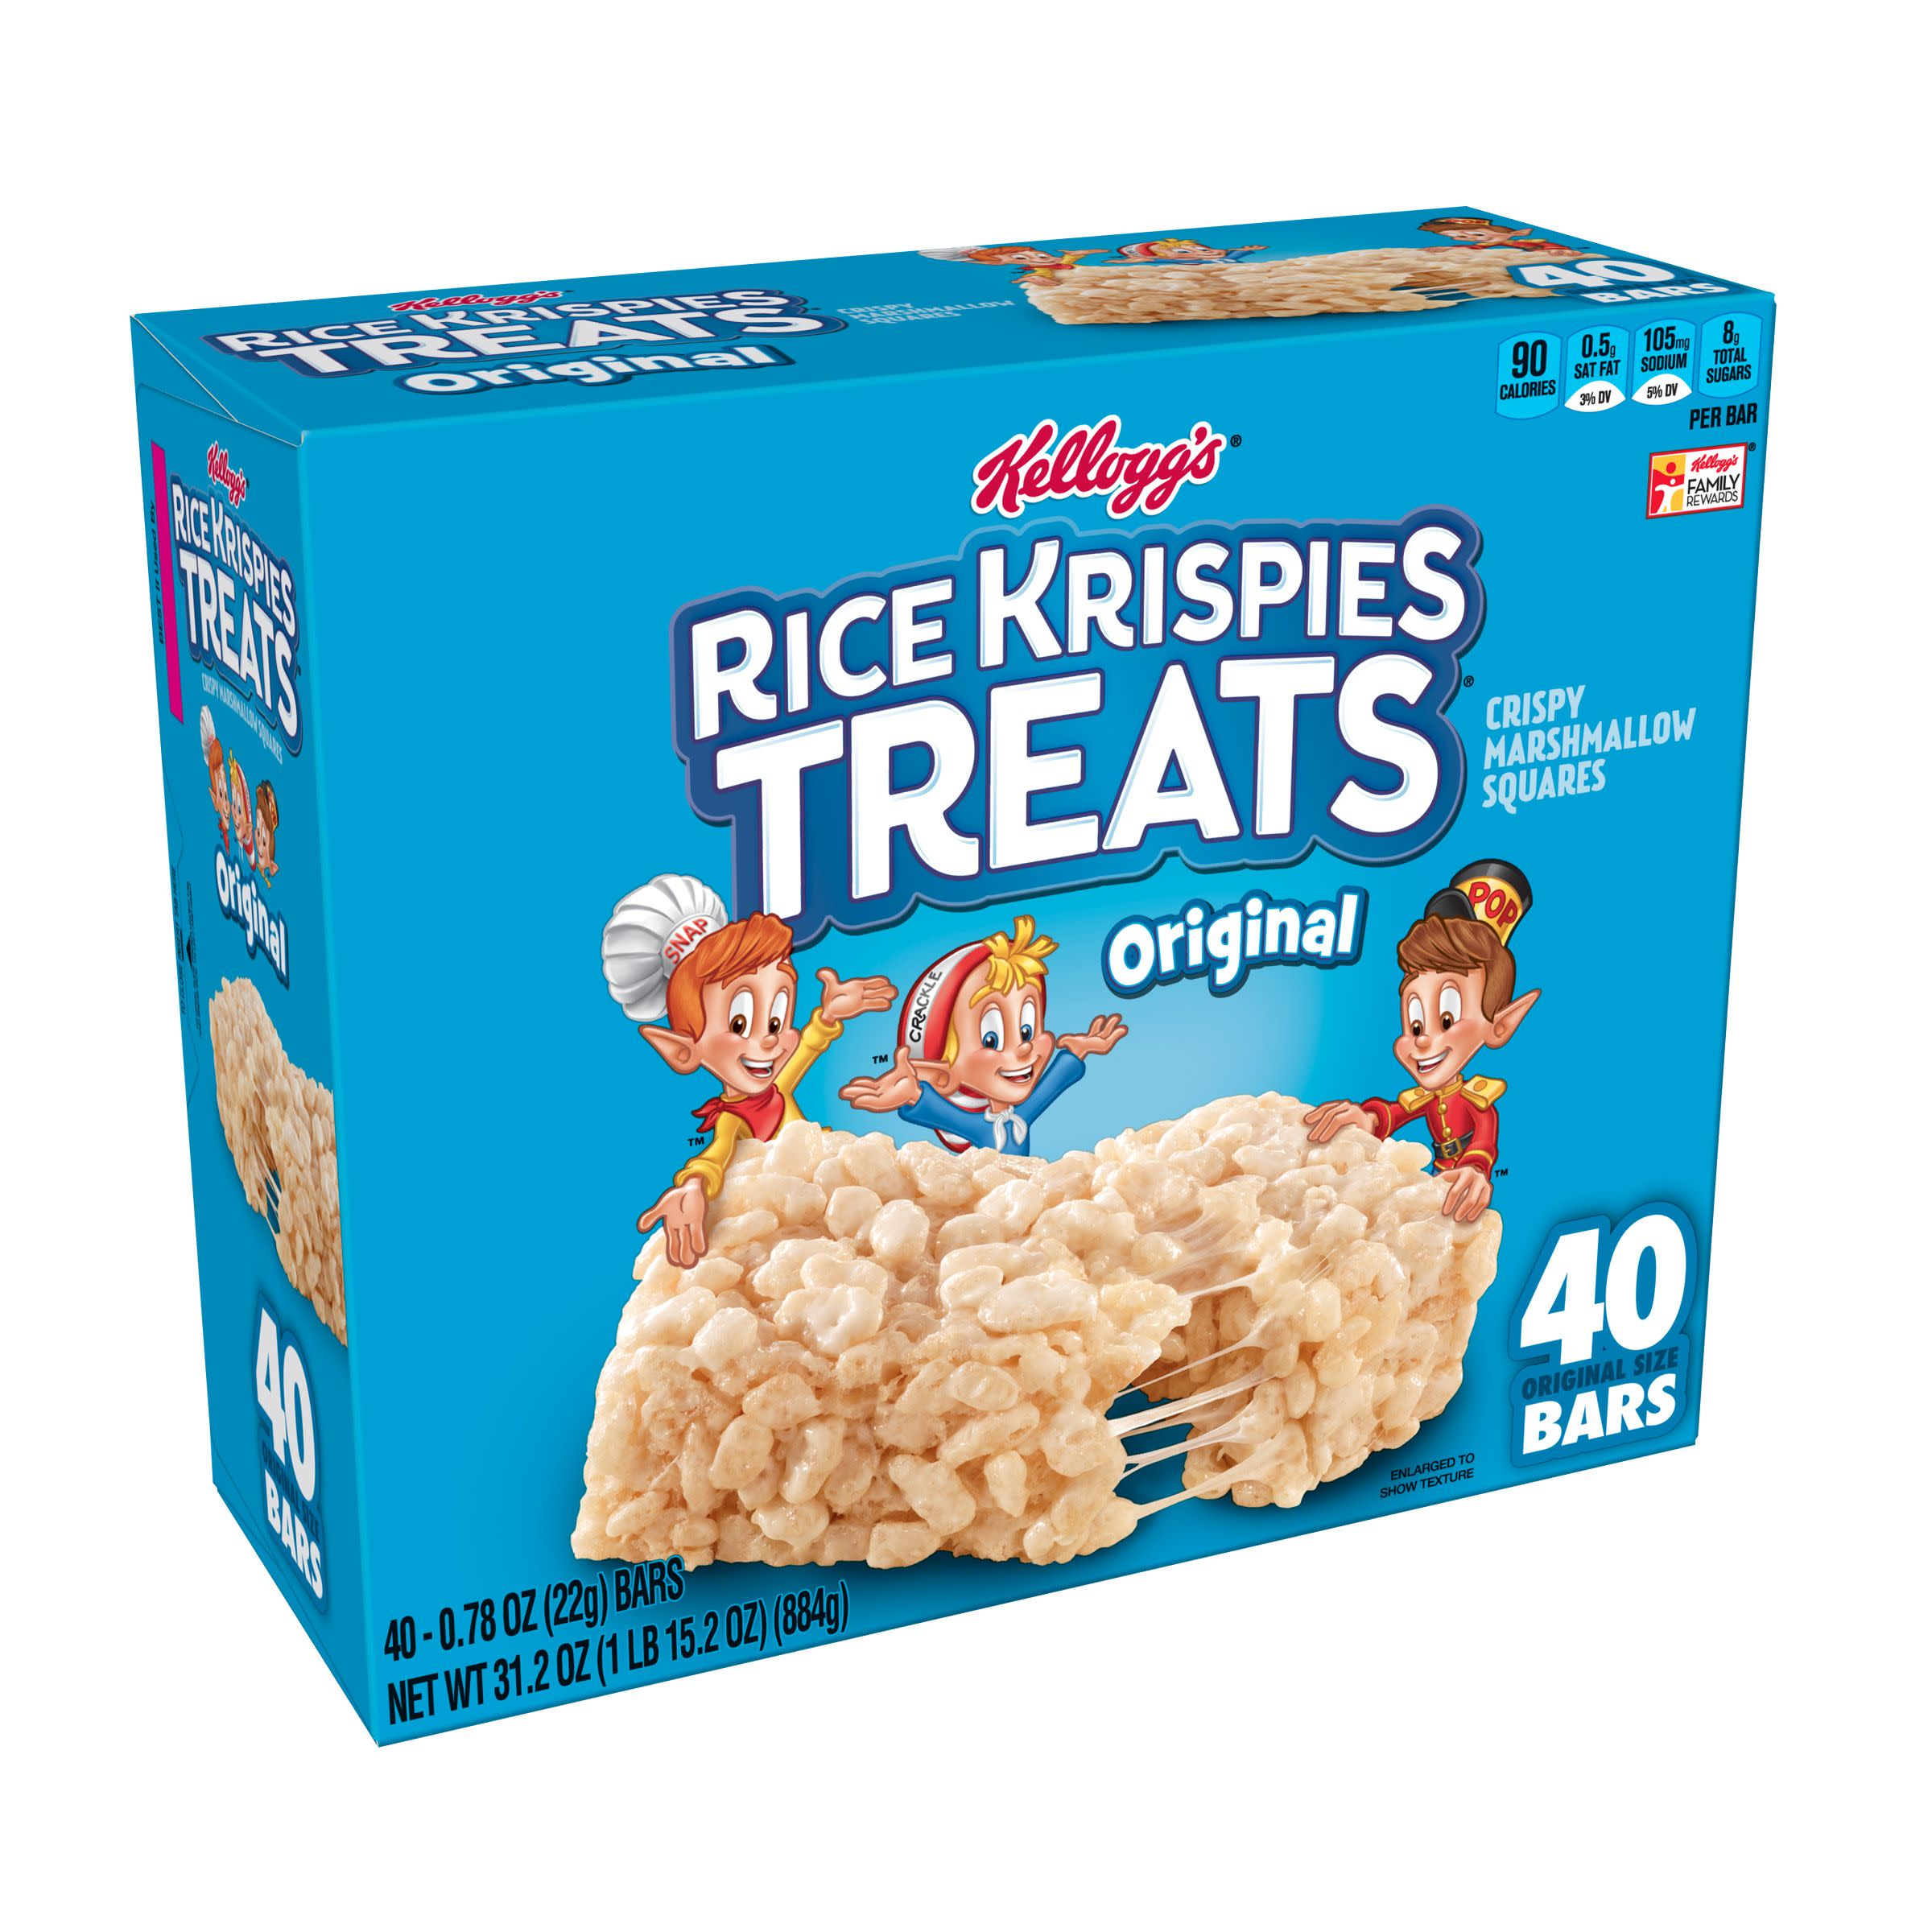 Kellogg's Rice Krispies Treats, Crispy Marshmallow Squares, 0.78 oz, 40 Ct